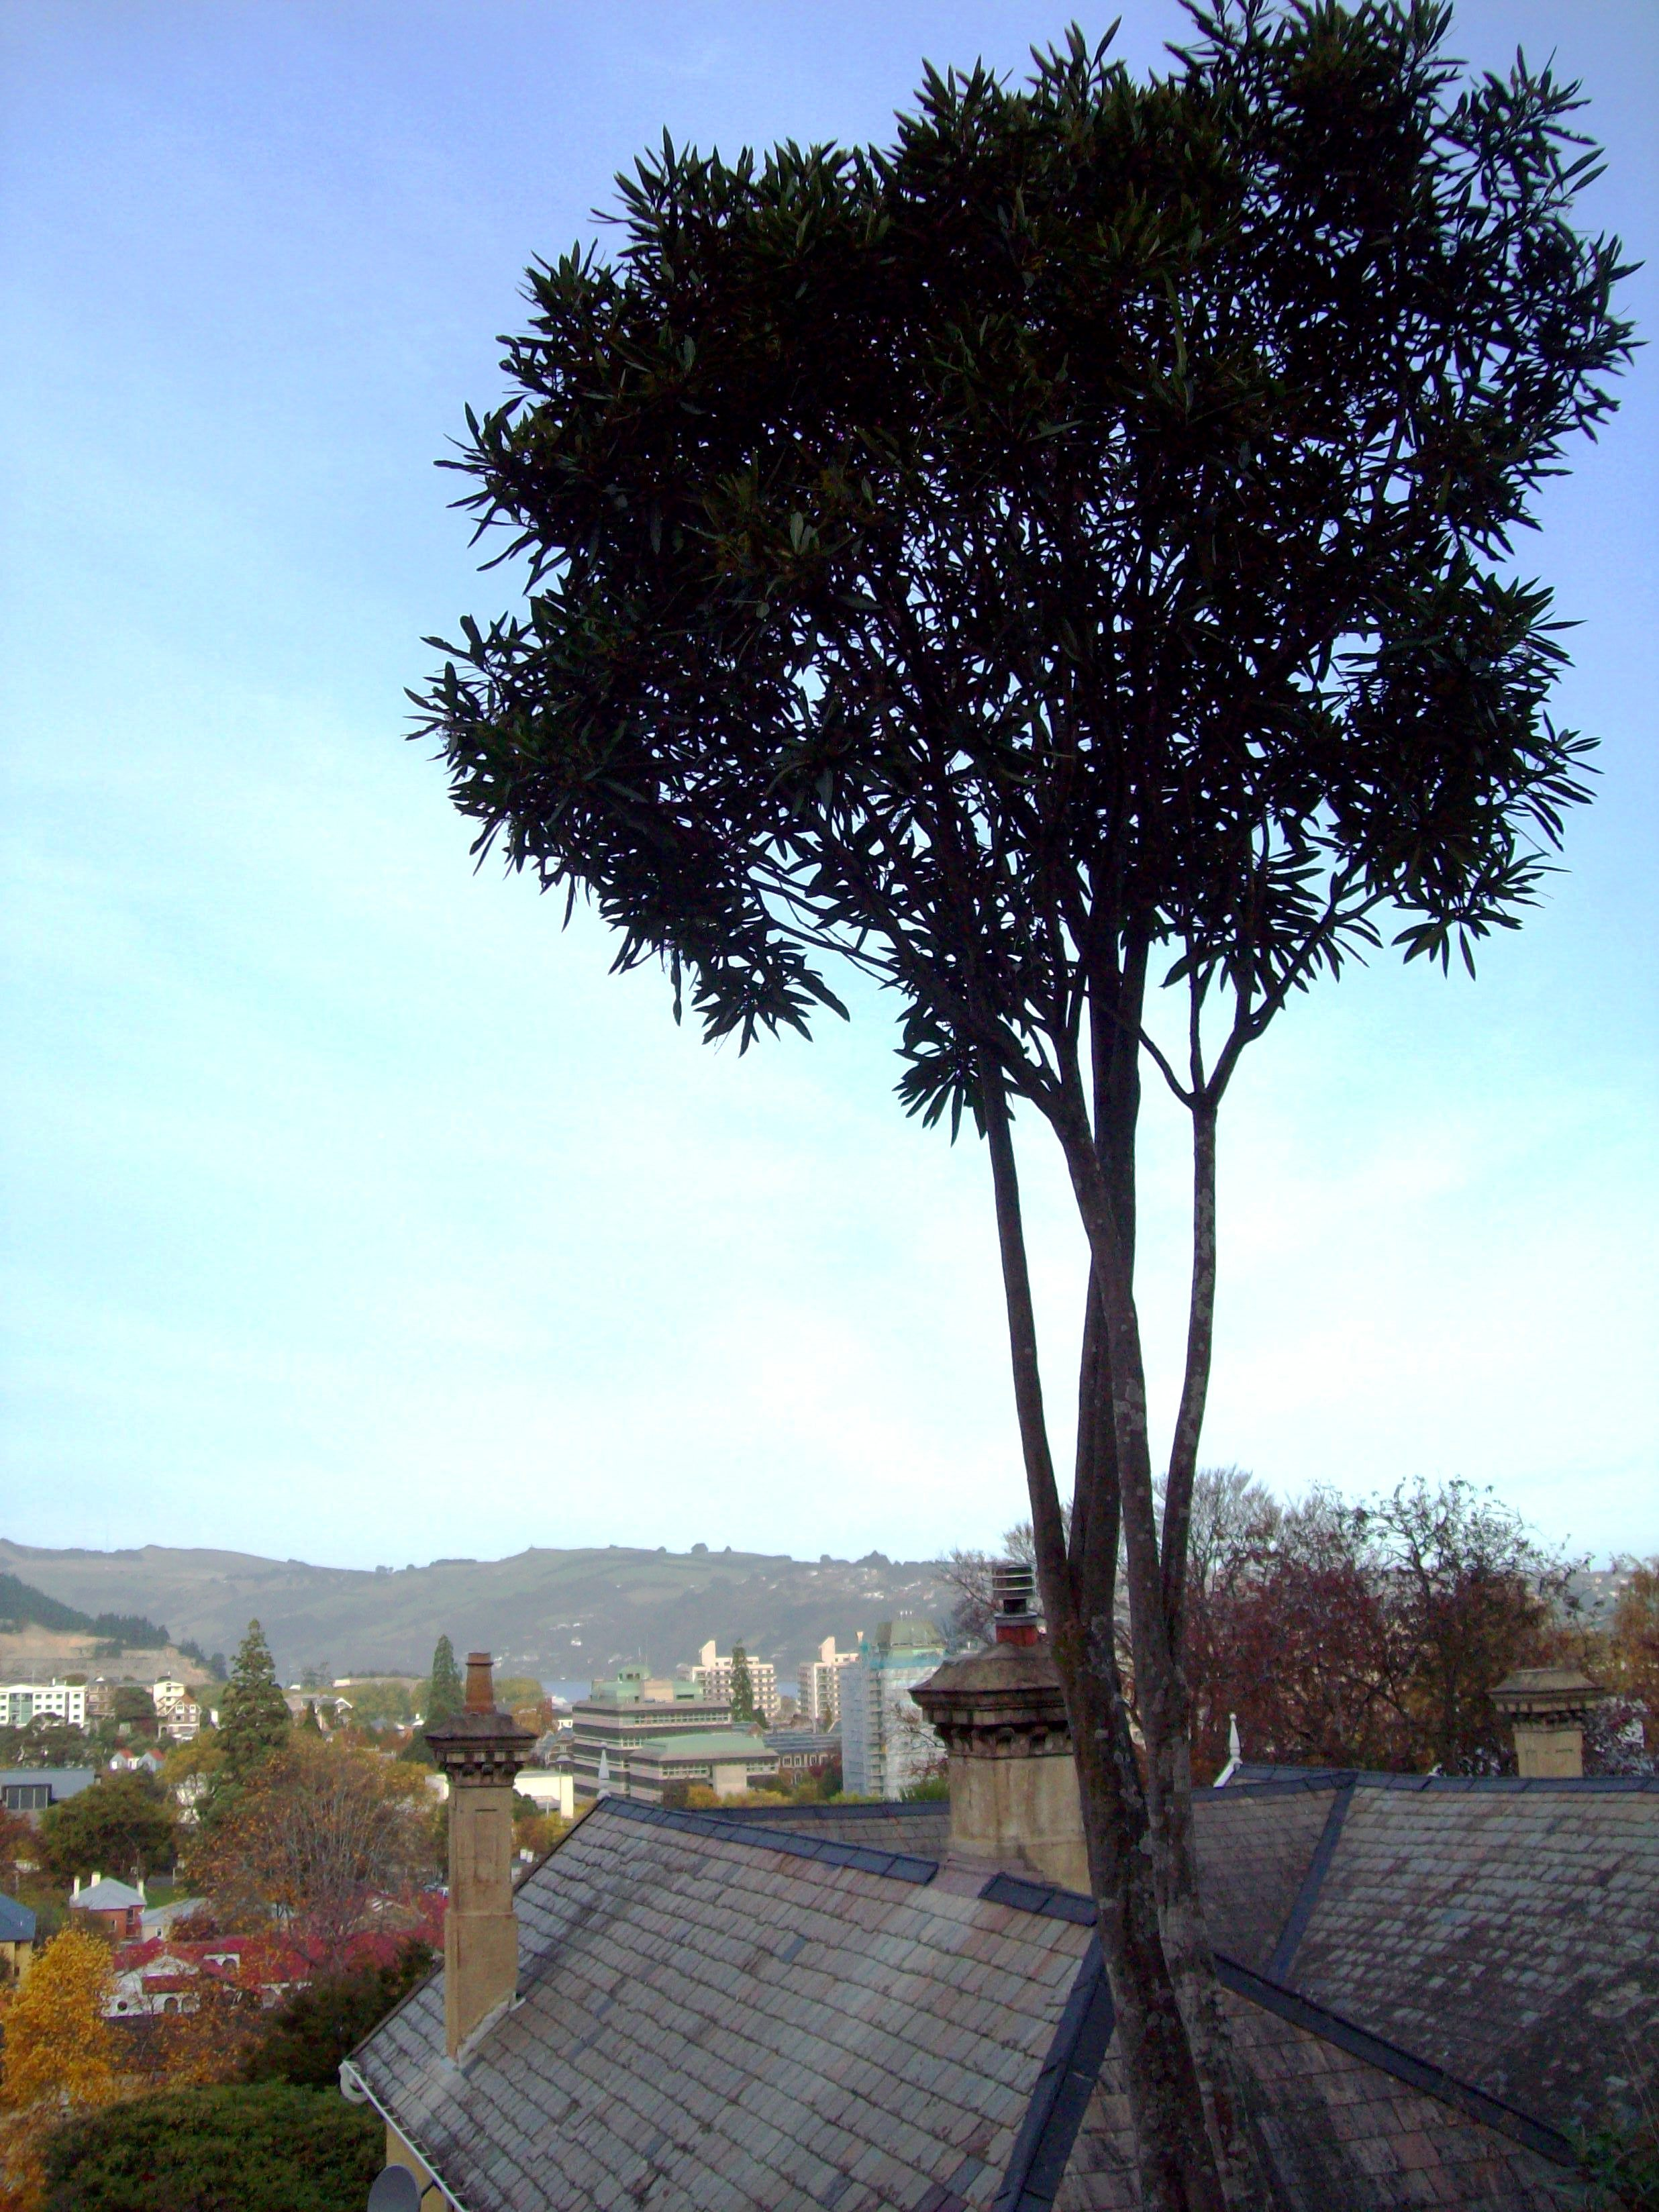 Looking out over autumn in dunedin photo